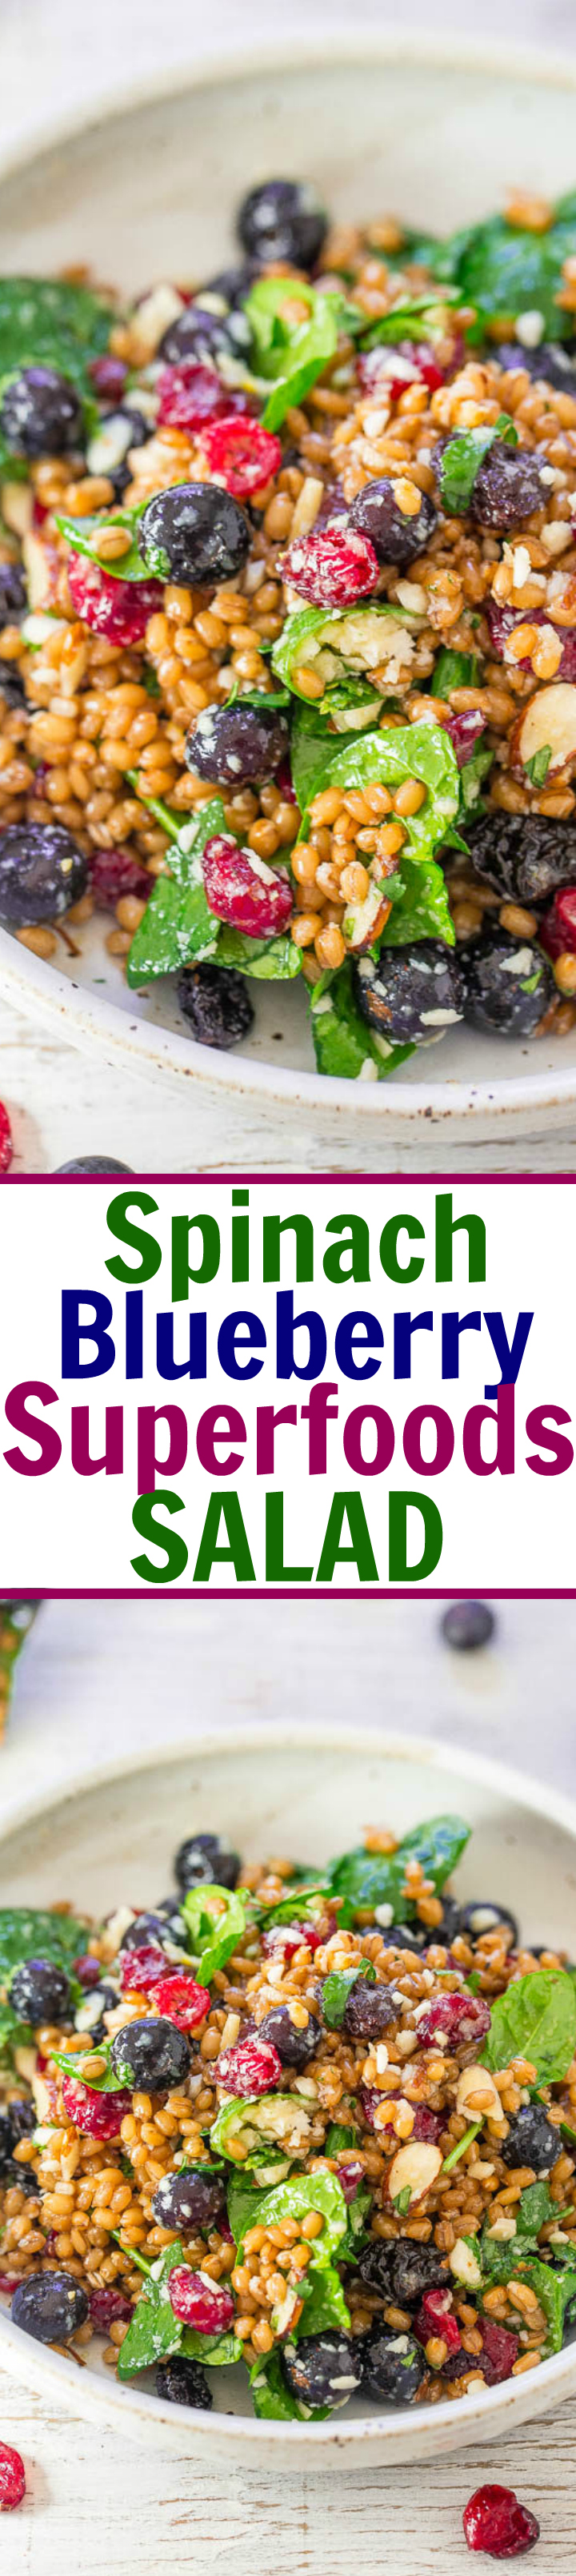 Spinach Blueberry Superfoods Salad - So many textures and flavors in this hearty salad filled with SUPERFOODS!! Spinach, blueberries, dried cranberries, almonds, and more! EASY, satisfying, healthy, and tastes amazing!!